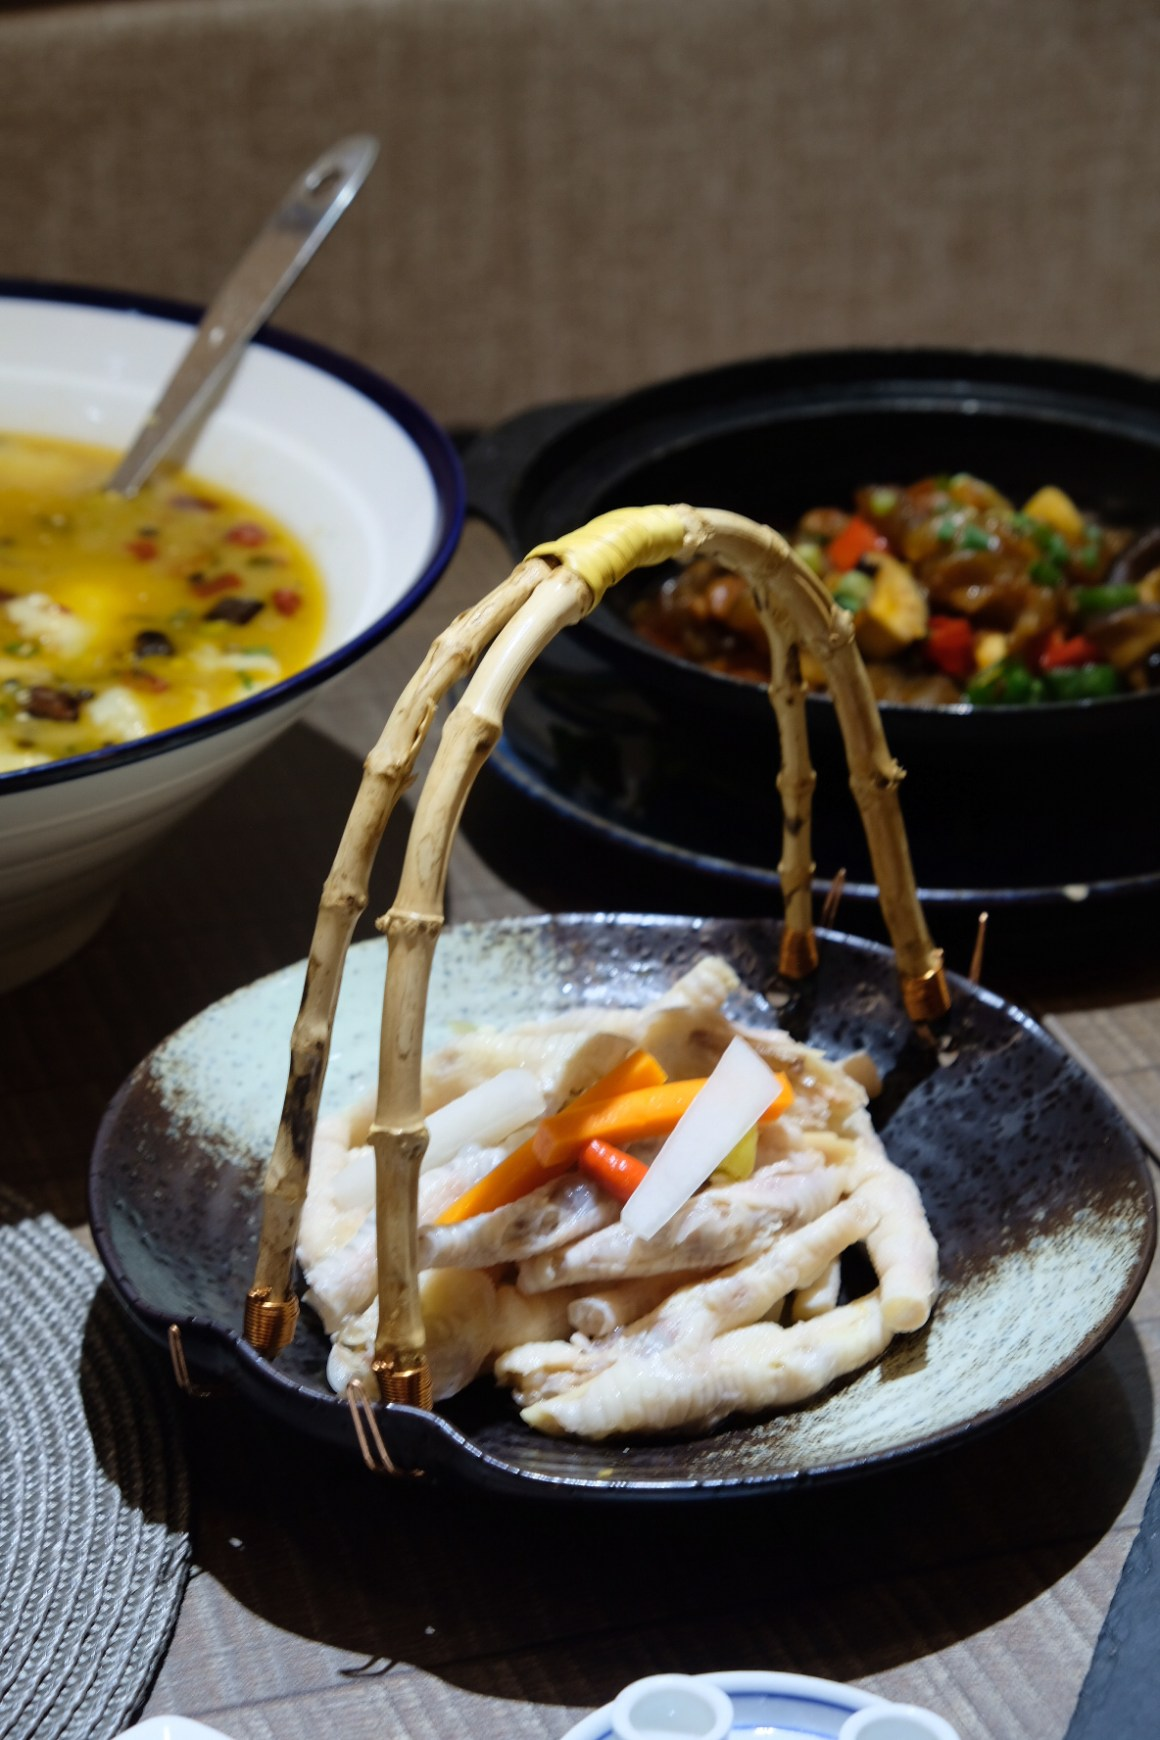 Chengdu Restaurant New Menu, At Amoy Street - Chicken Feet with Pickled Peppers 神仙泡椒凤爪 ($13.80)